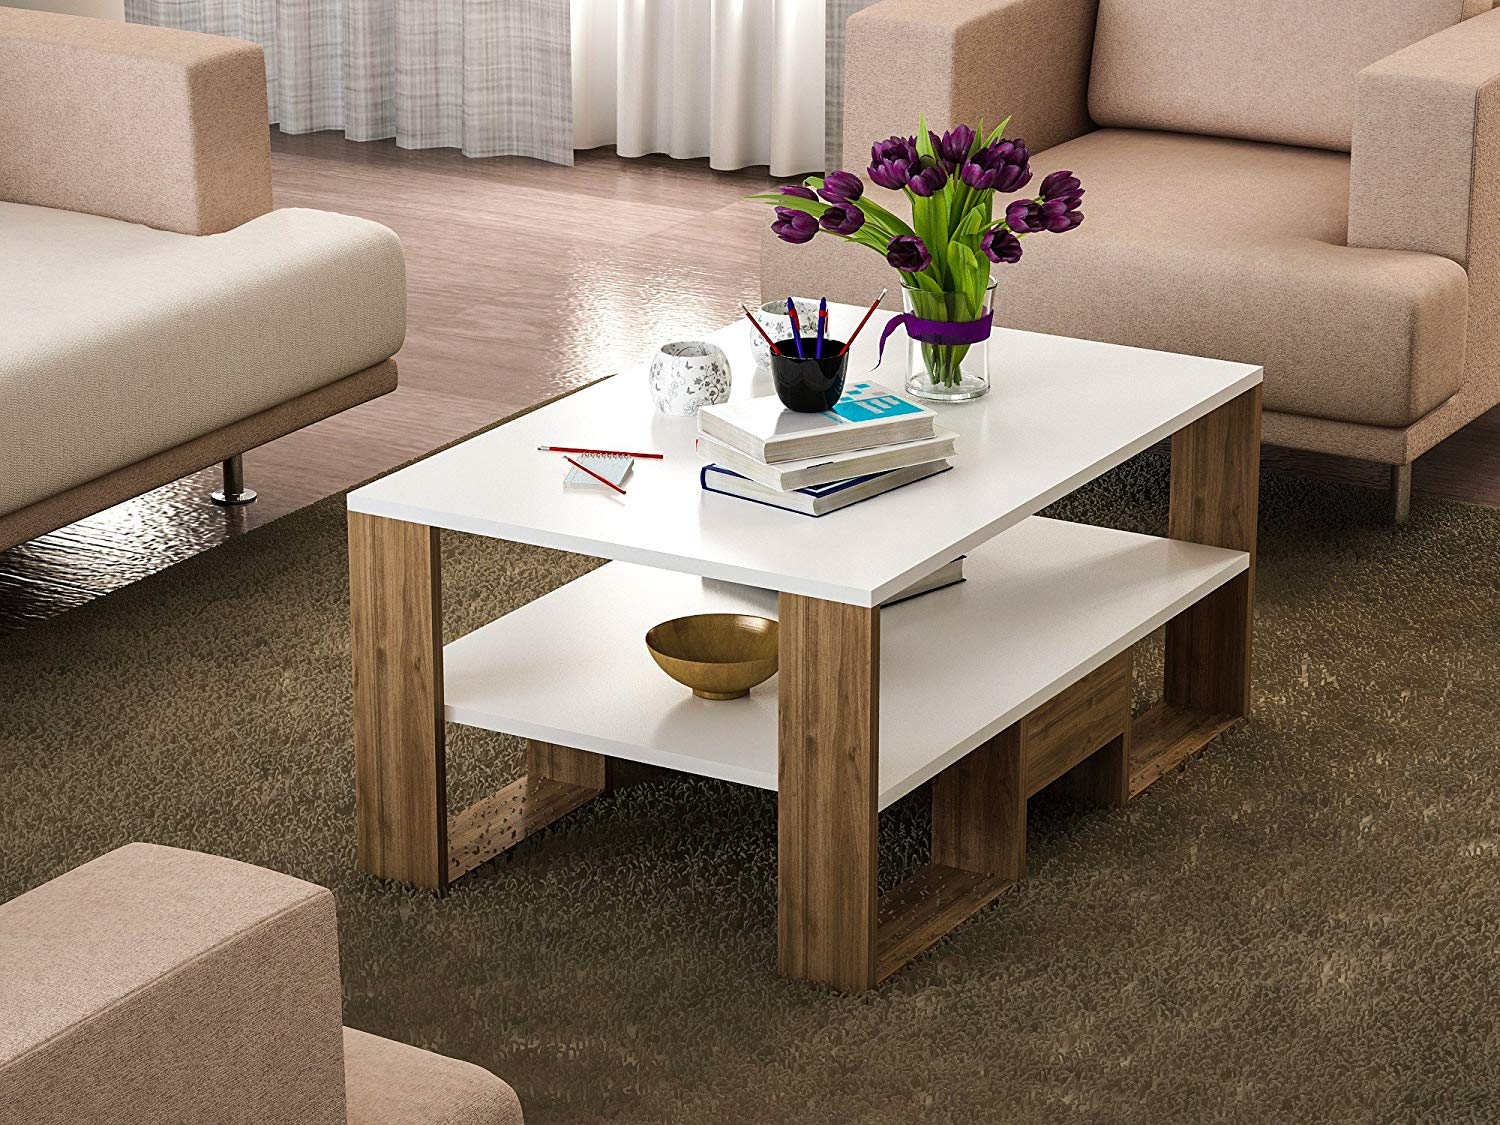 LaModaHome Modern Style Coffee Table - Brown-White Modern Coffee Table Wooden Resistant Table - Cocktail Table with Storage - Best Choice For Quality - For Home, Office, Living Room and More